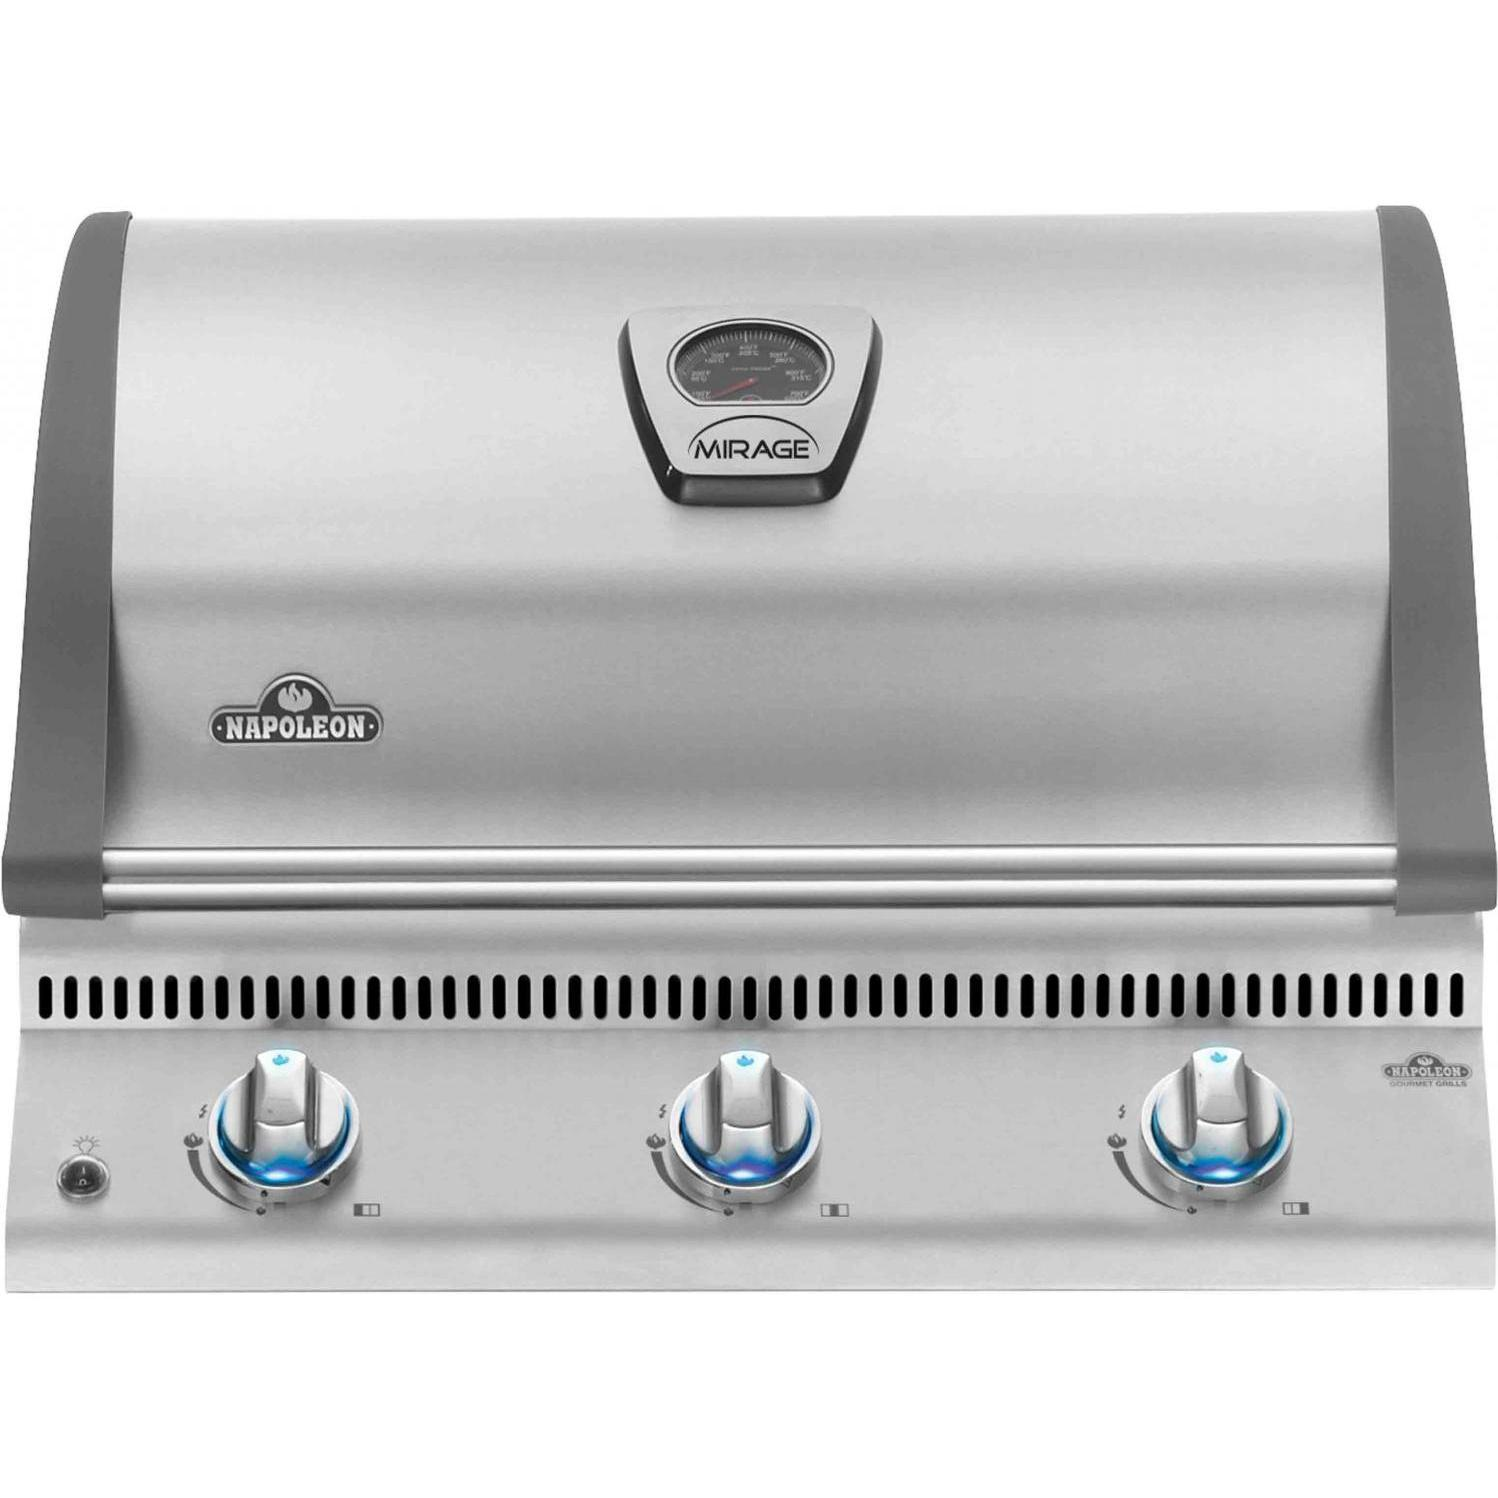 Napoleon BIM485PSS-2 Built-In Mirage 485 Propane Grill with Bottom Burners